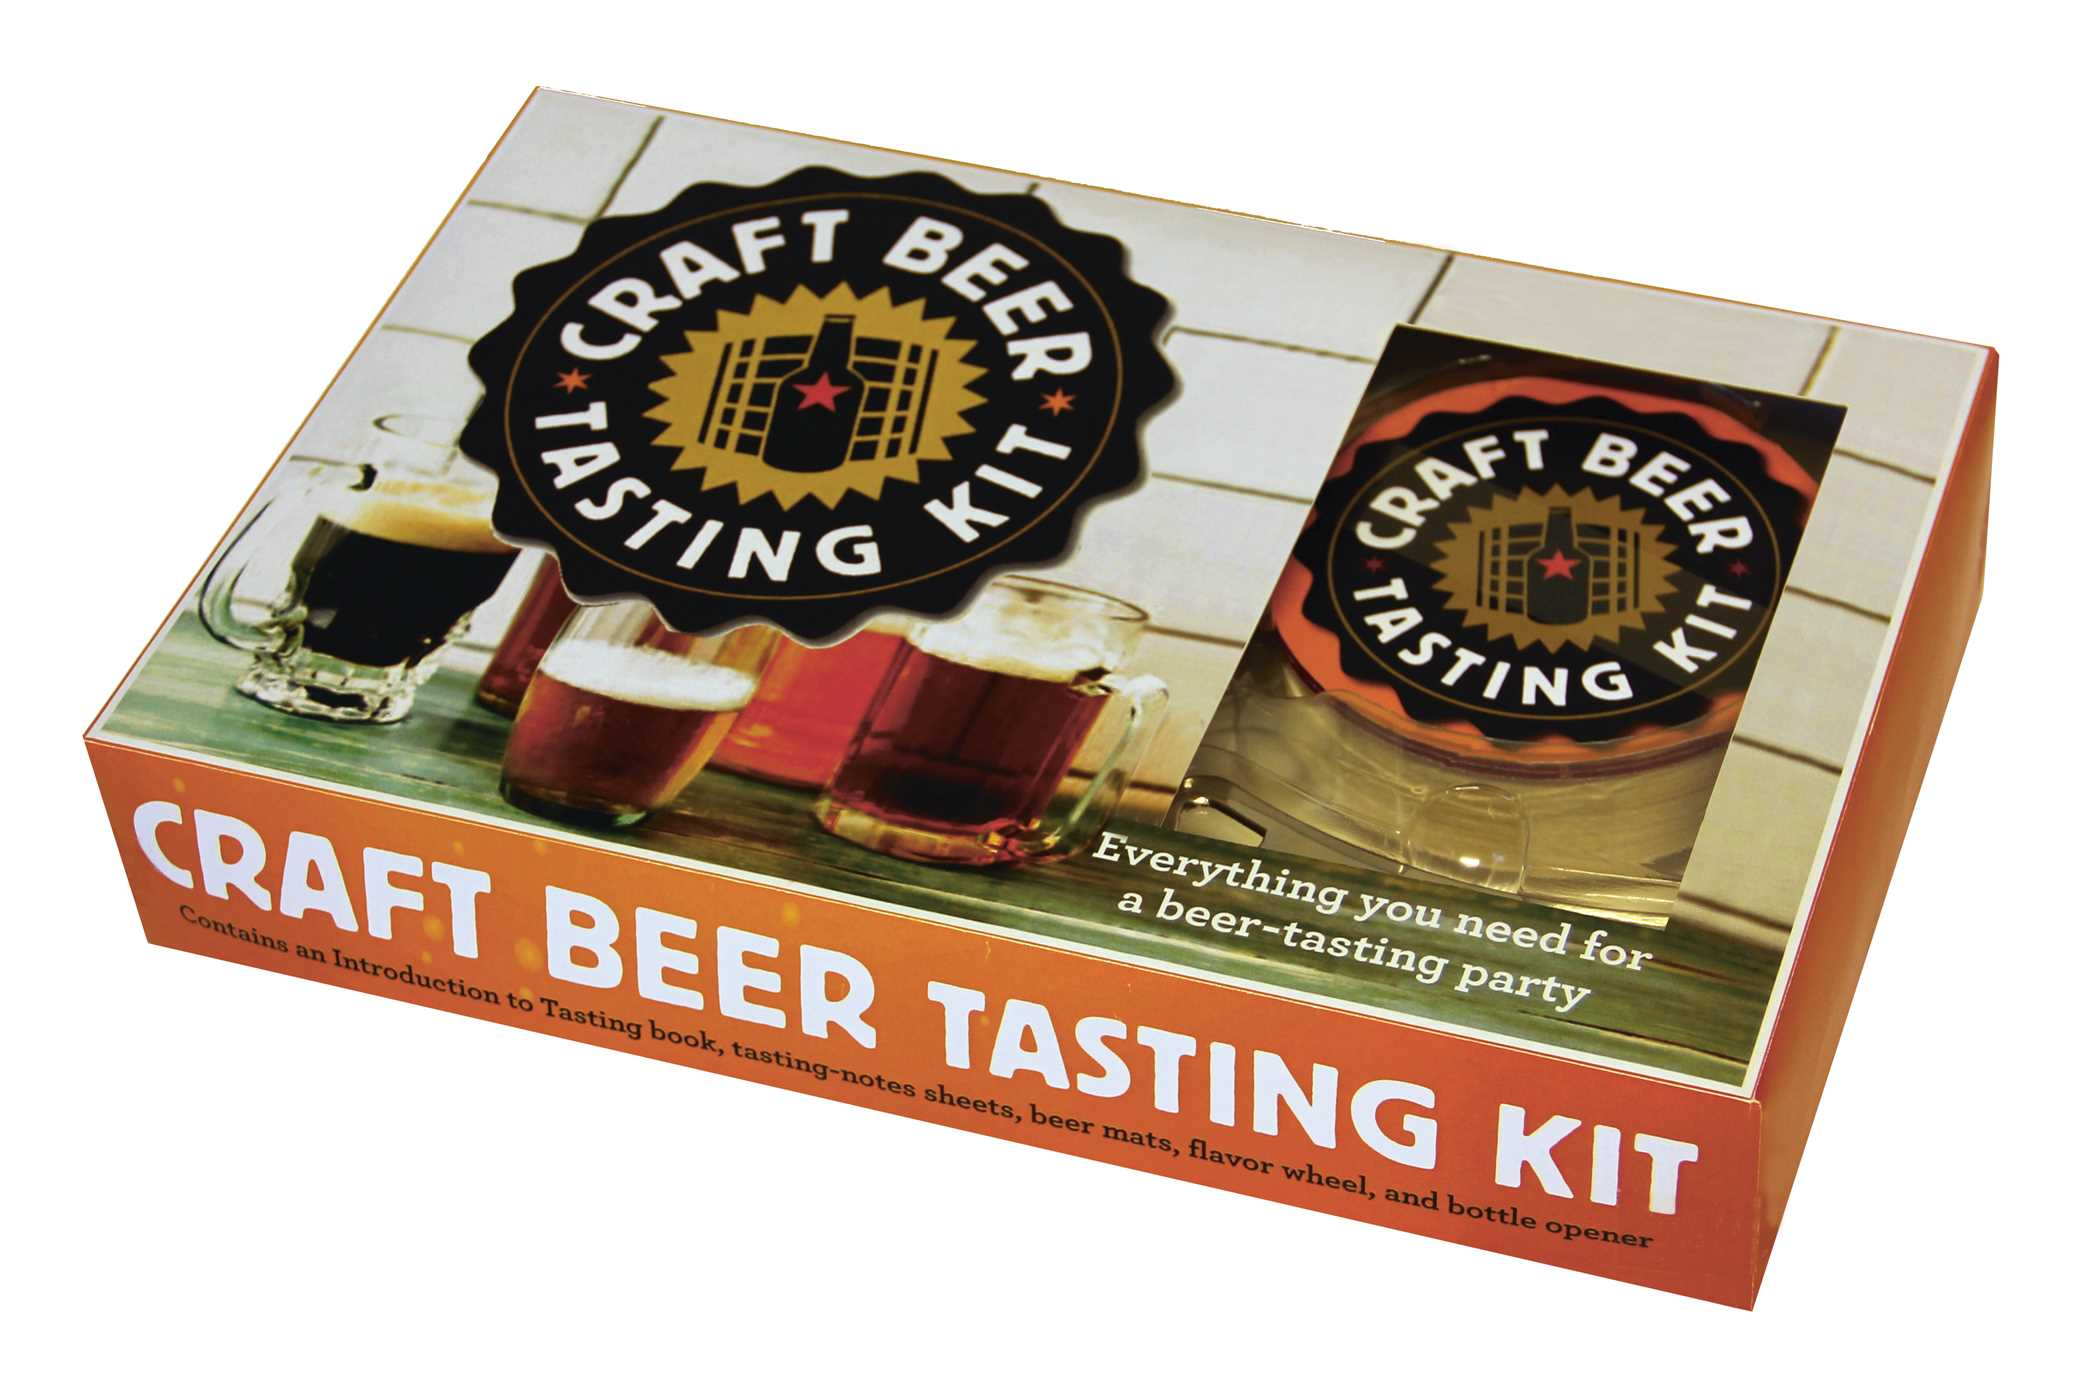 Book Cover Craft Beer ~ Craft beer tasting kit book summary video official